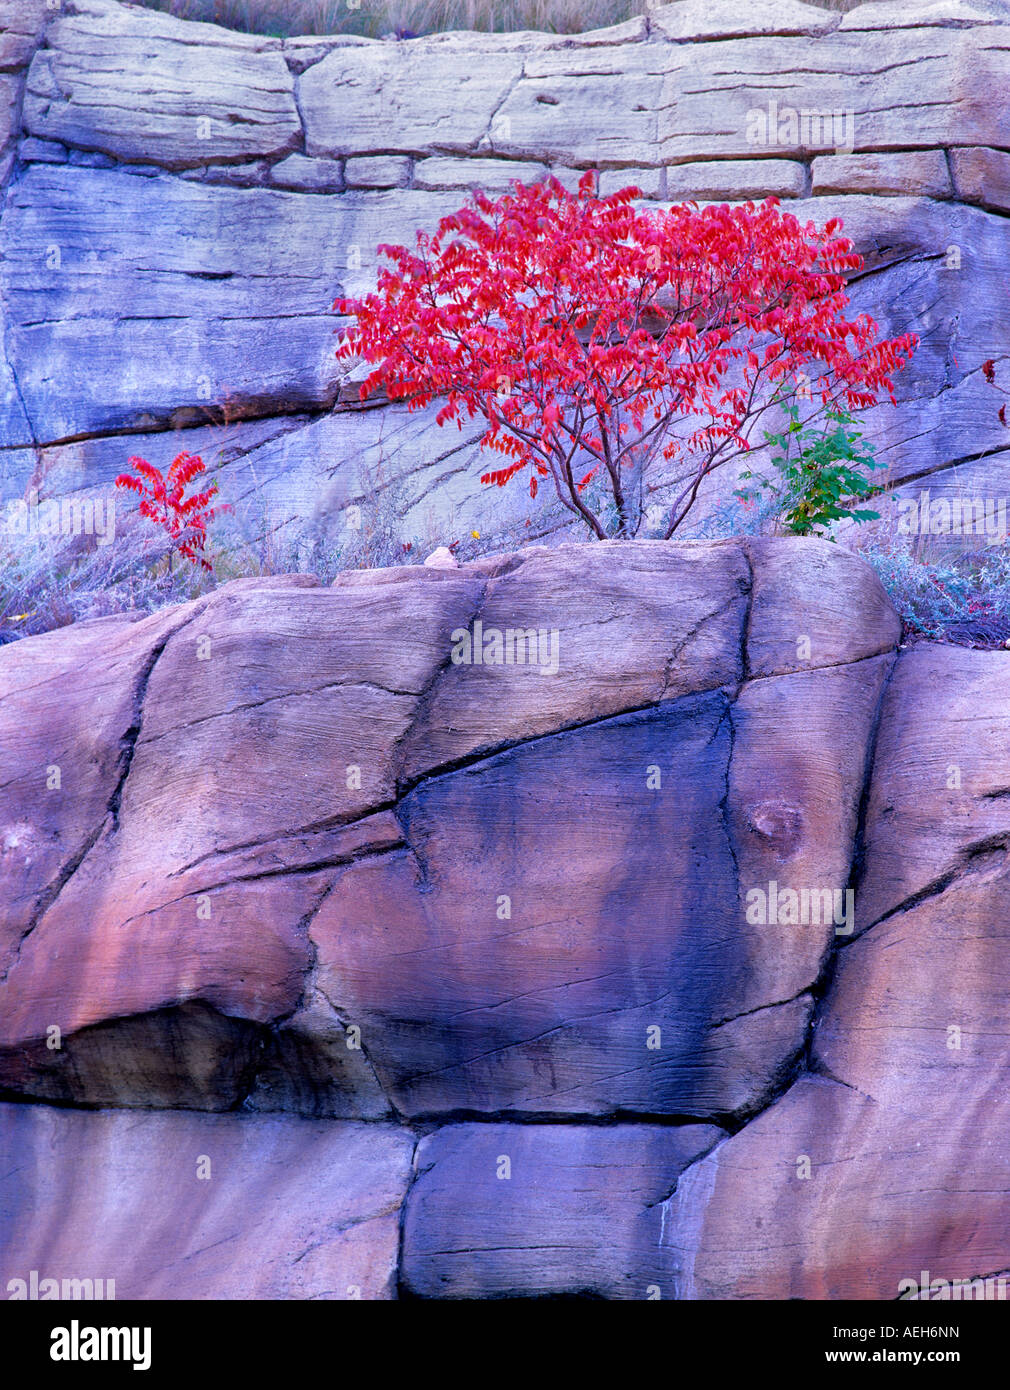 Caída de color rojo el zumaque secreto Rock Mountain Wilderness Arizona Imagen De Stock